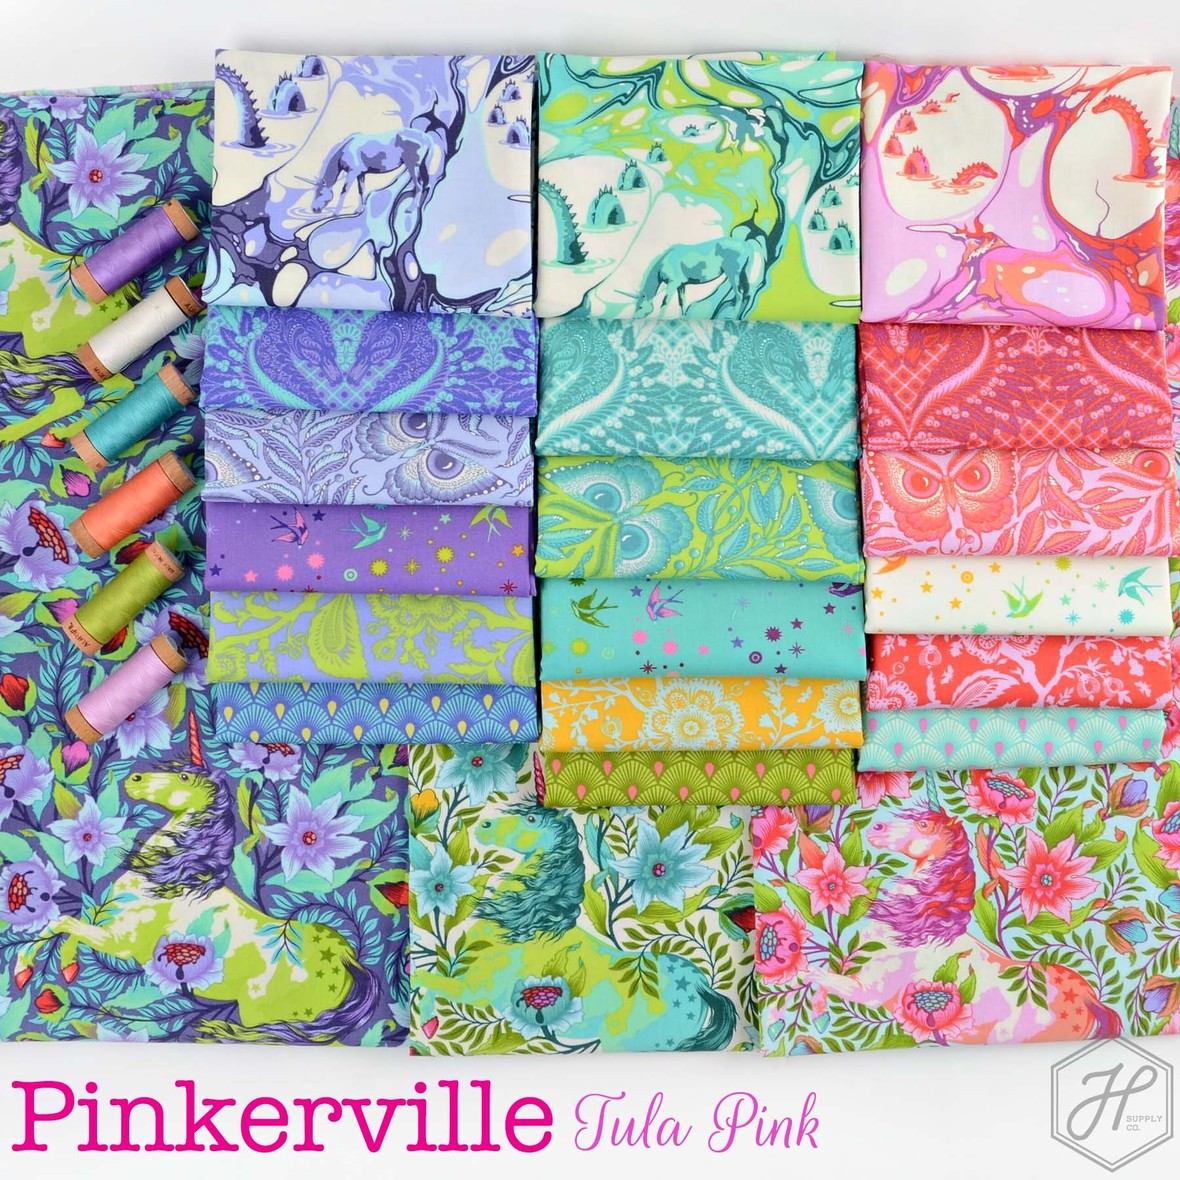 Pinkerville Fabric Poster Tula Pink at Hawthorne Supply Co